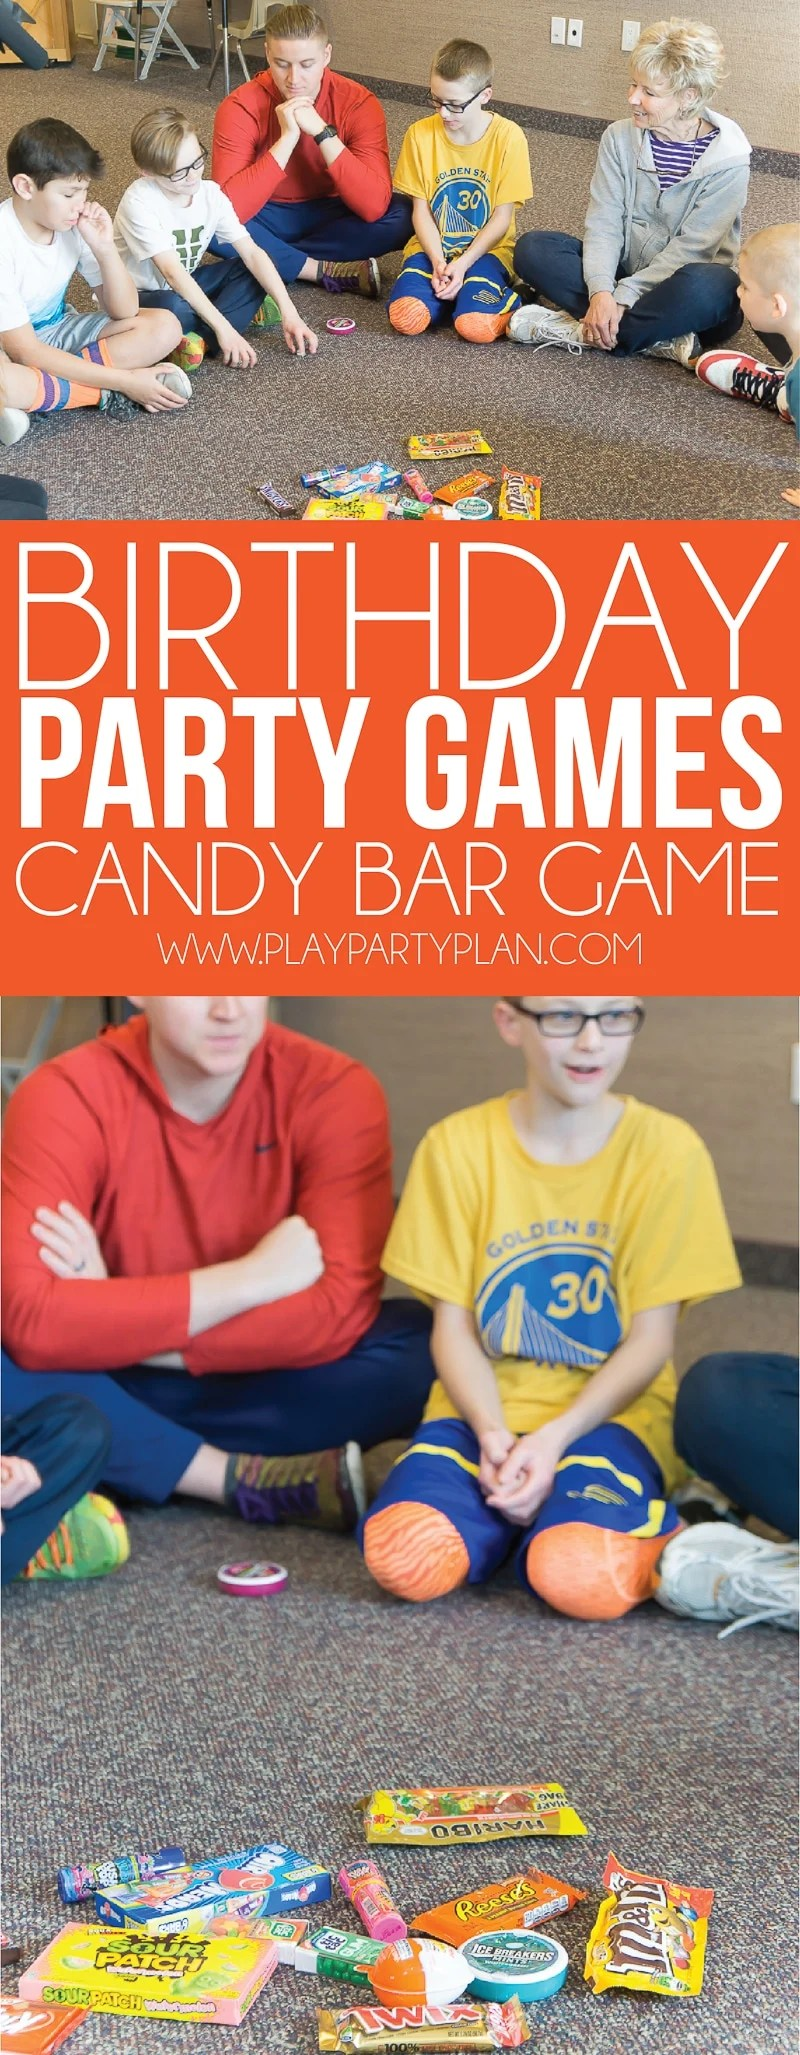 Smashing Even You Birthday Party Games Birthday Party Games 3 Year S Kids Adults Play Party Plan Birthday Party Games Outside Birthday Party Games For art Birthday Party Games